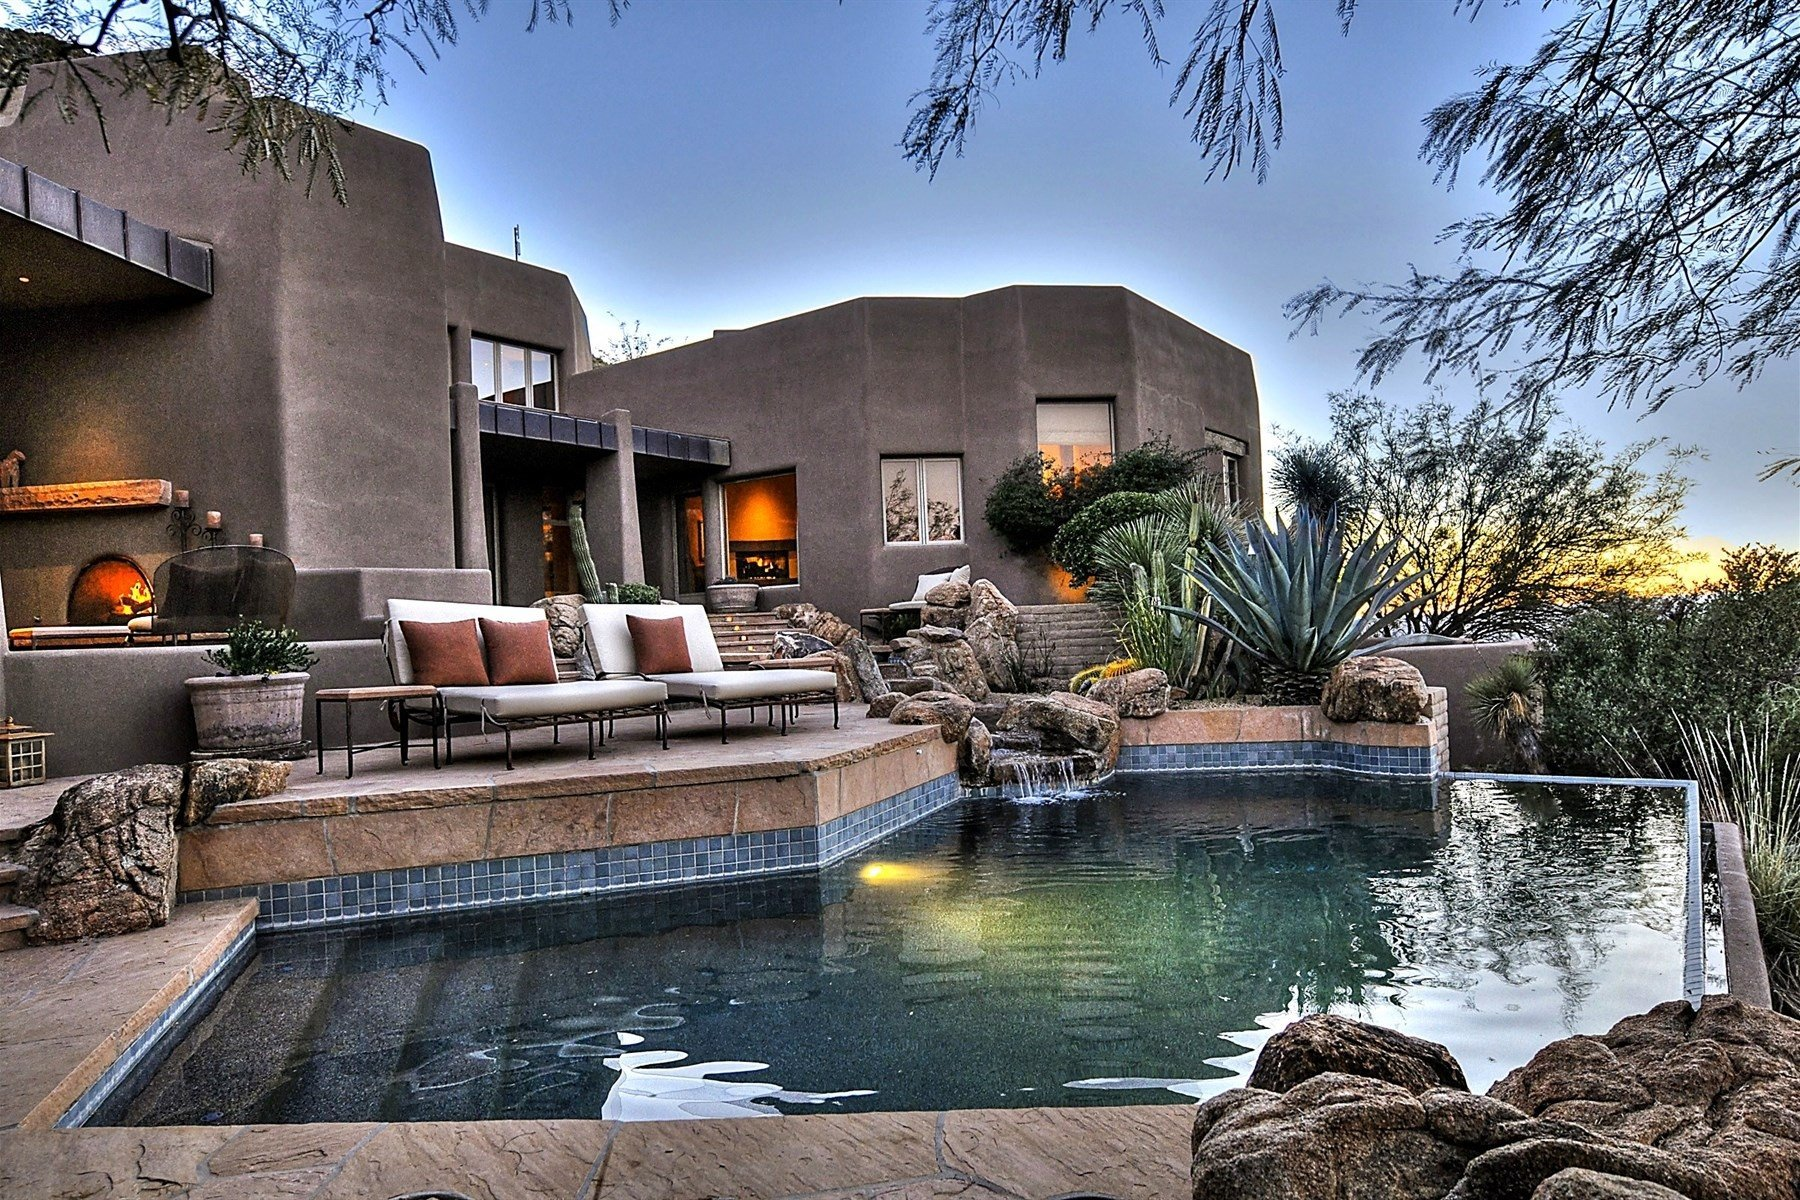 Rockwood estates homes for sale chandler az rockwood for Rockwood homes